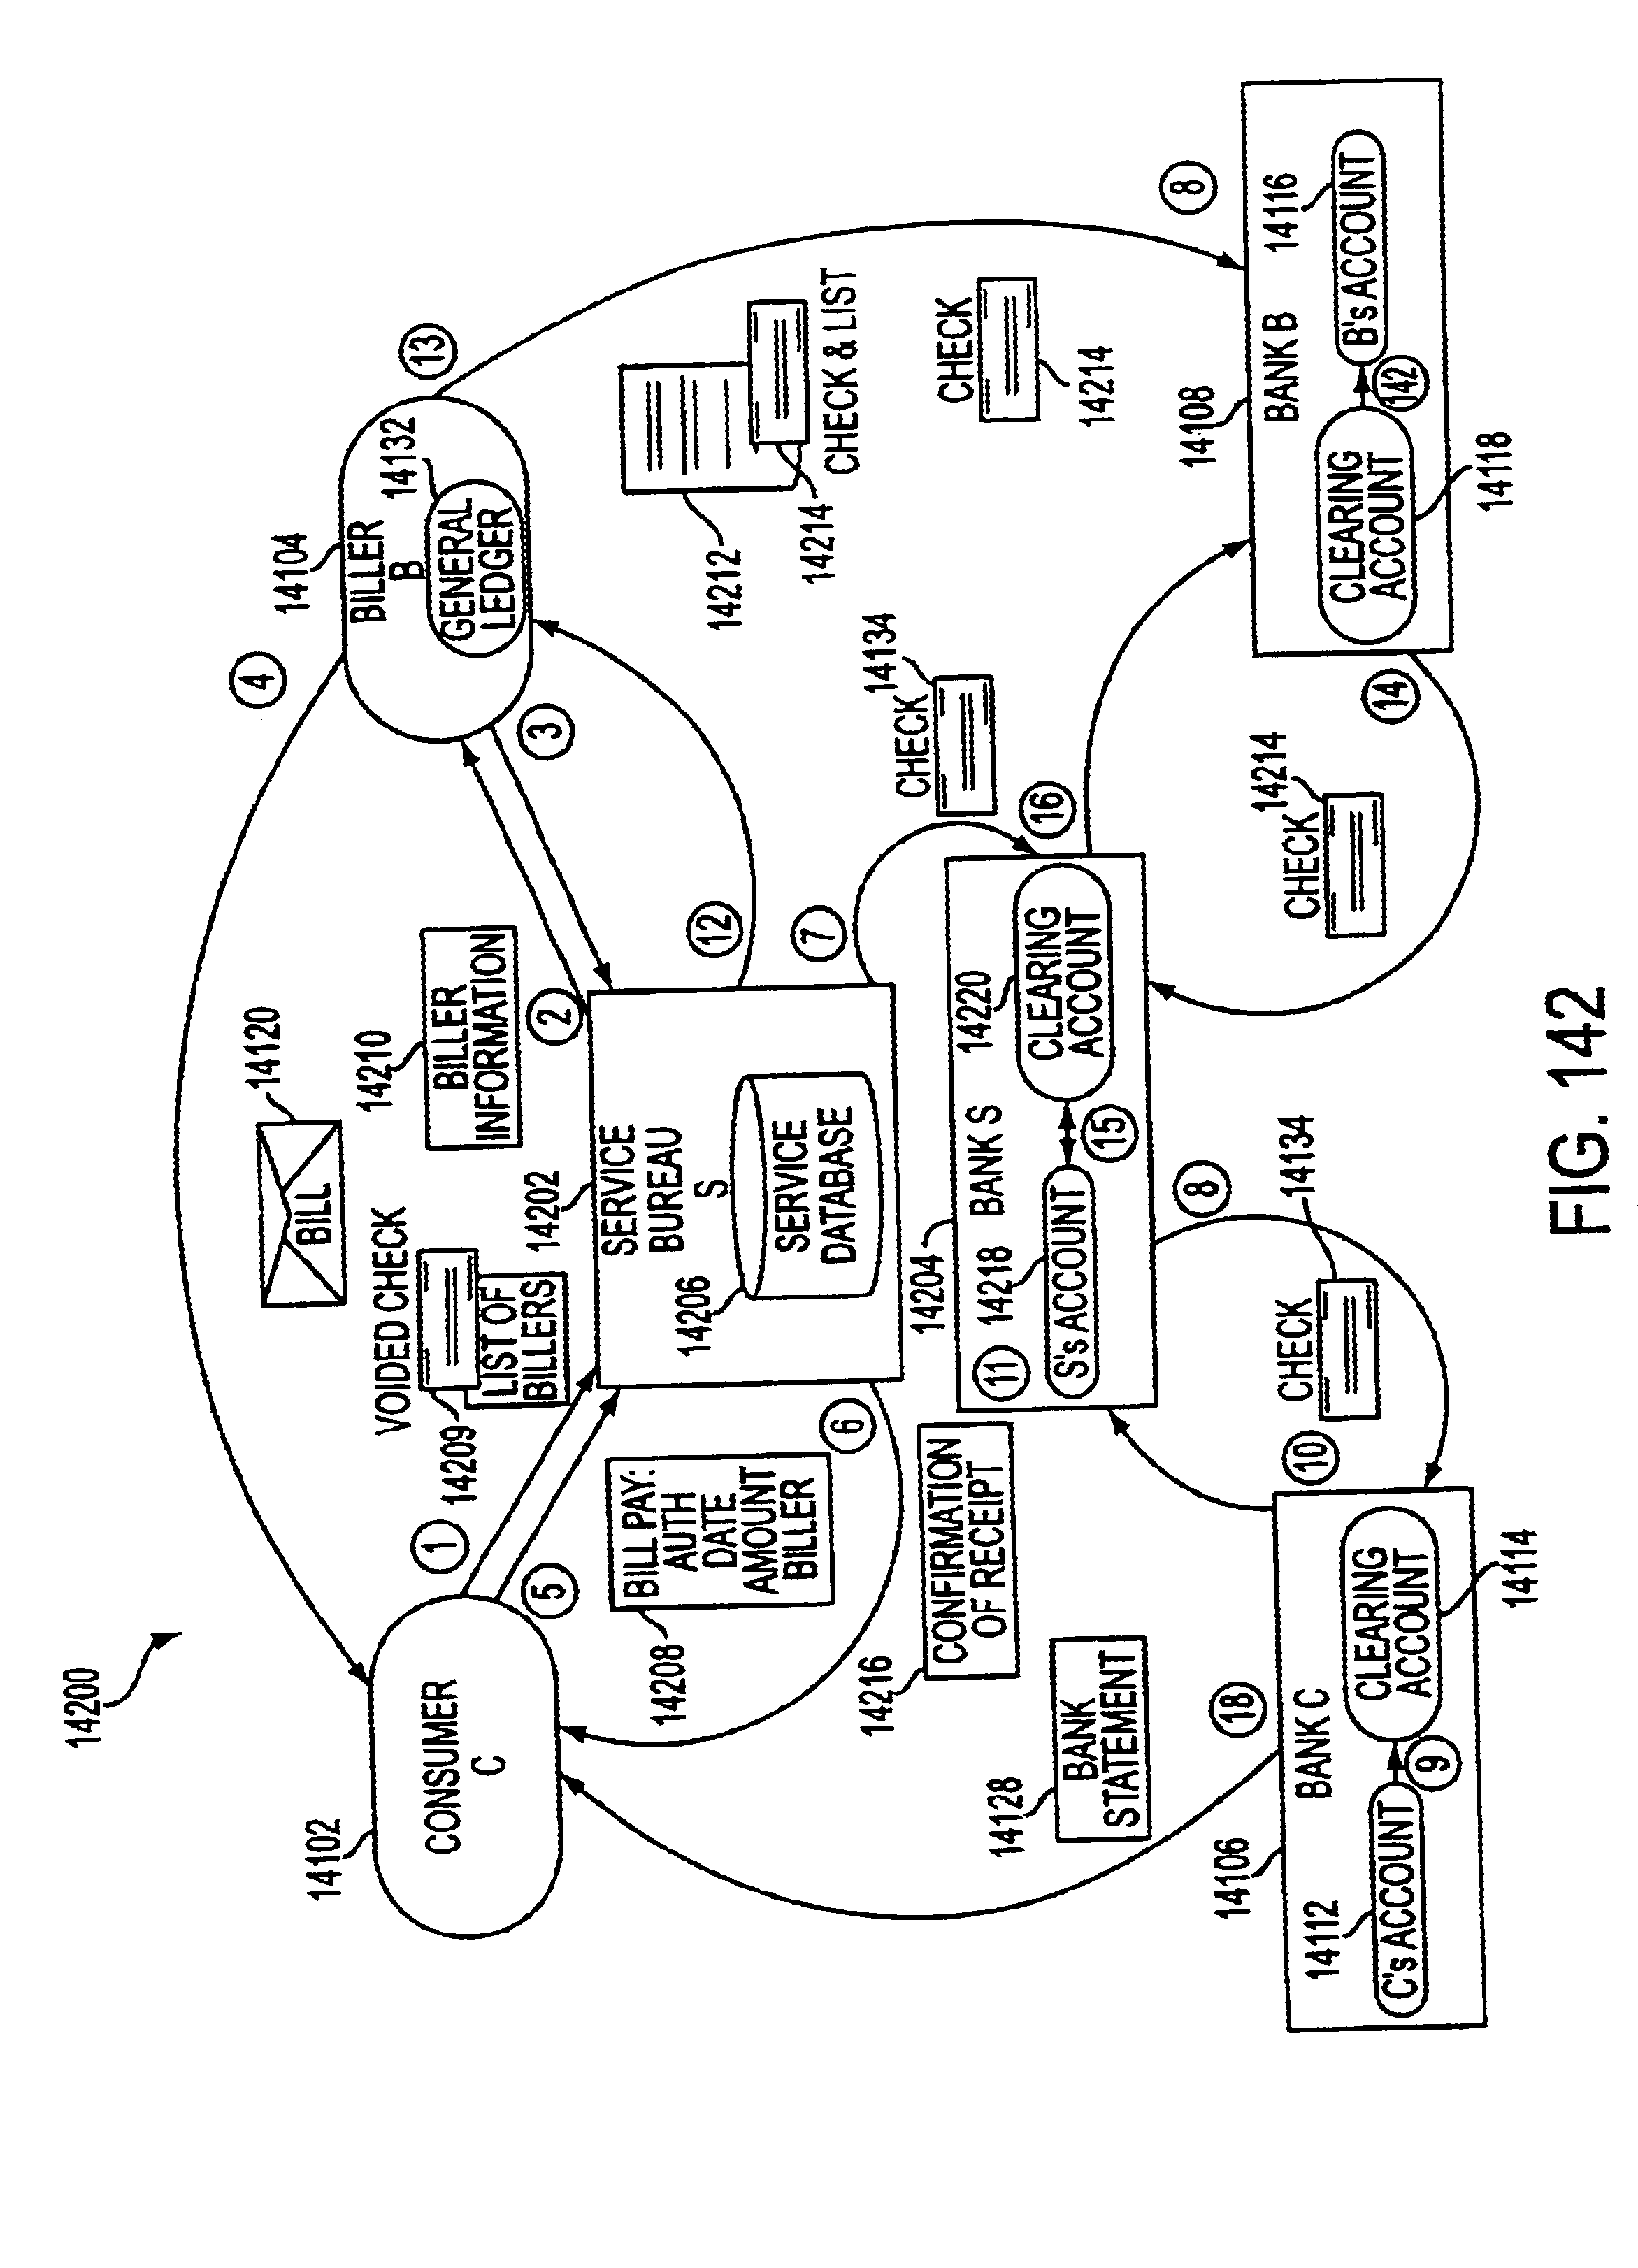 14209 Alternating Relay Wiring Diagram Electrical Diagrams Patent Us 6671818 B1